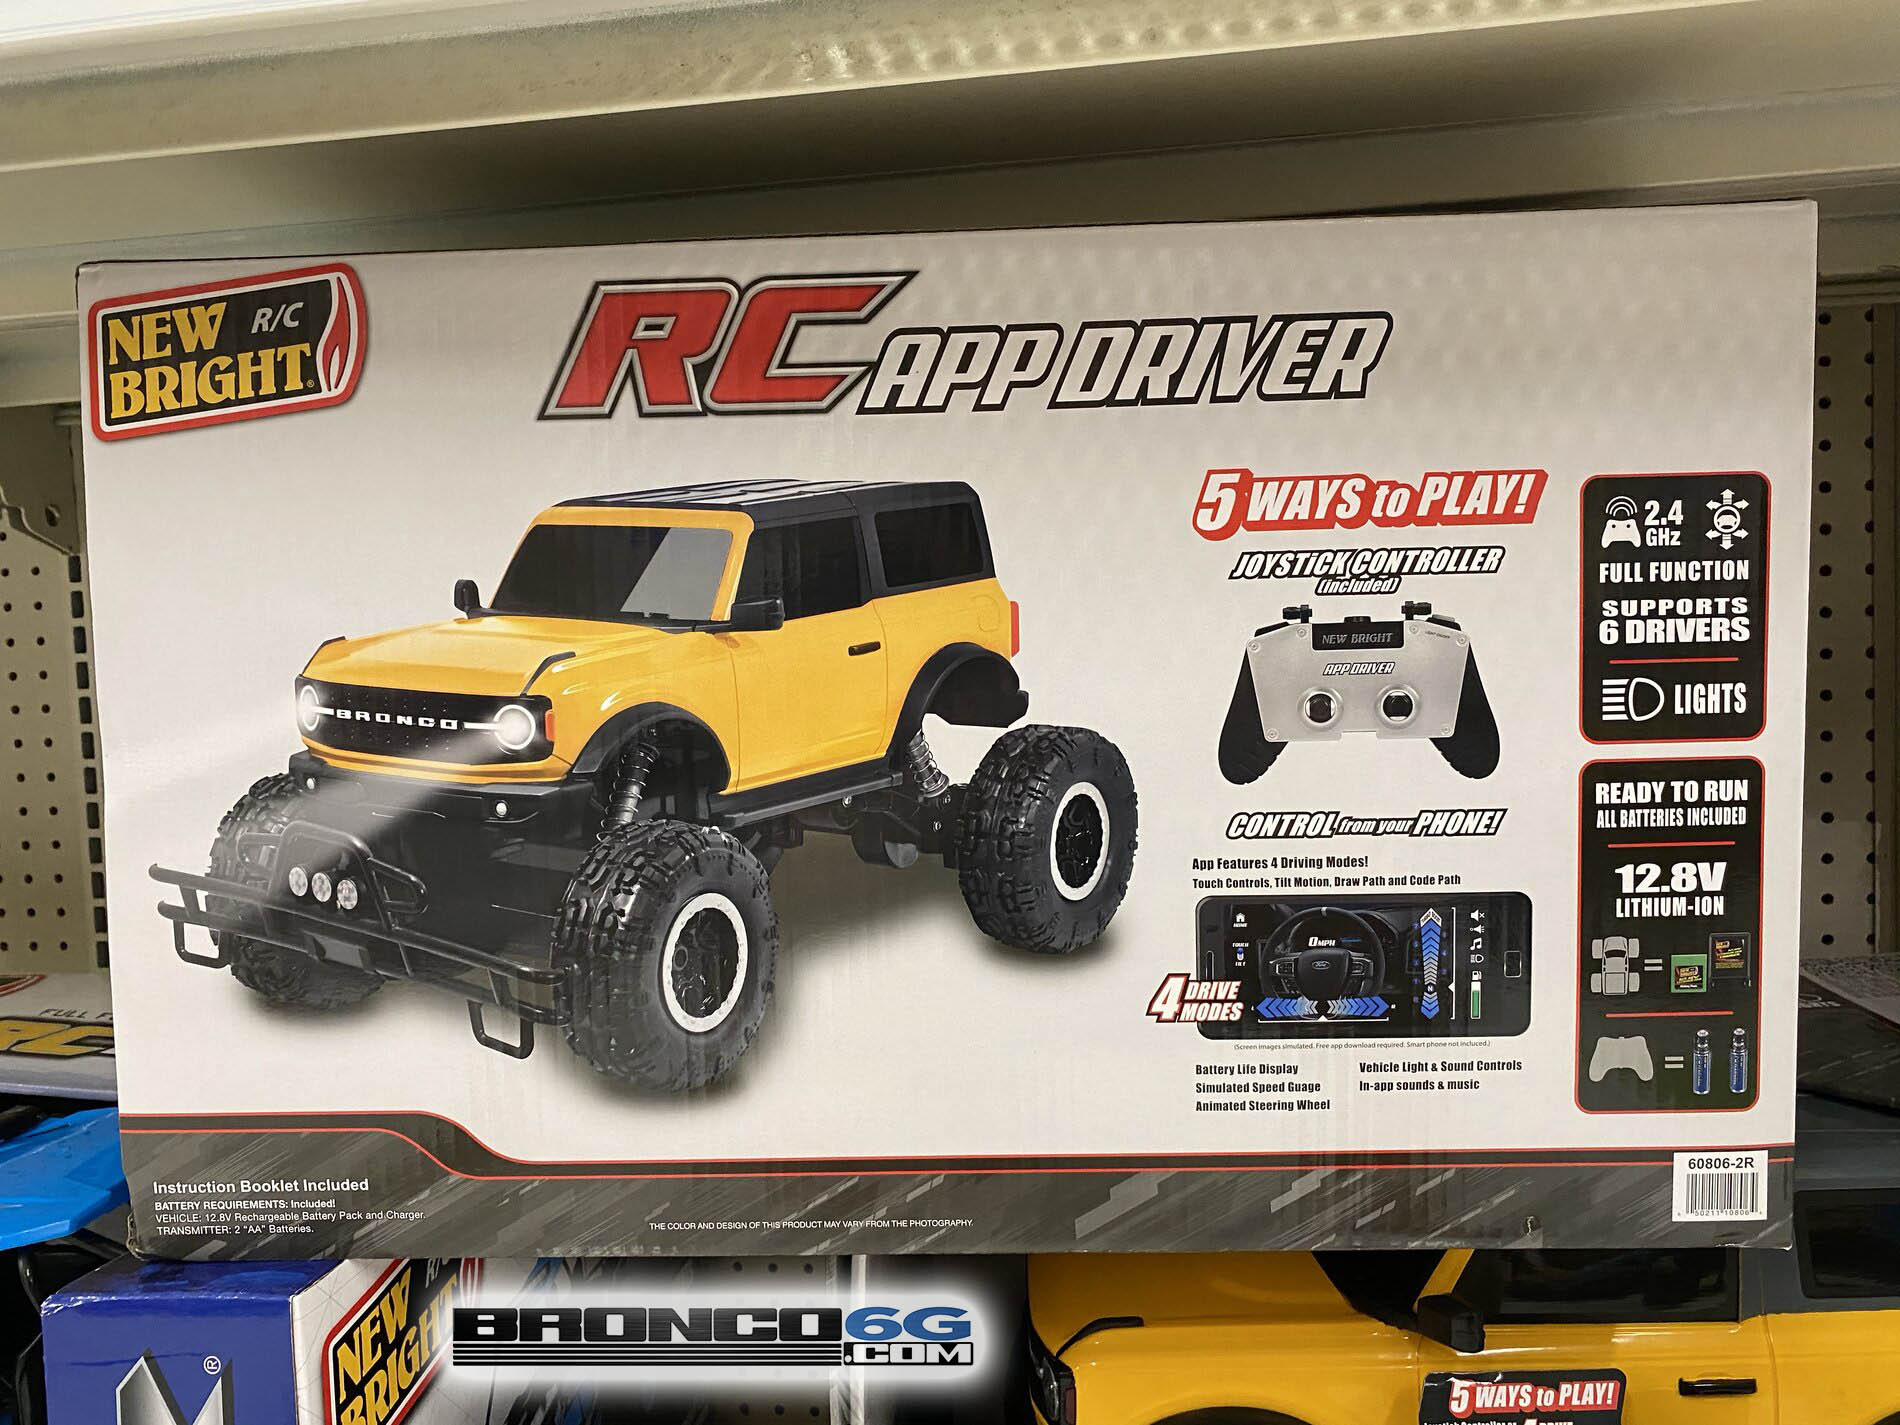 2021 Ford Bronco RC remote control car 3.jpg